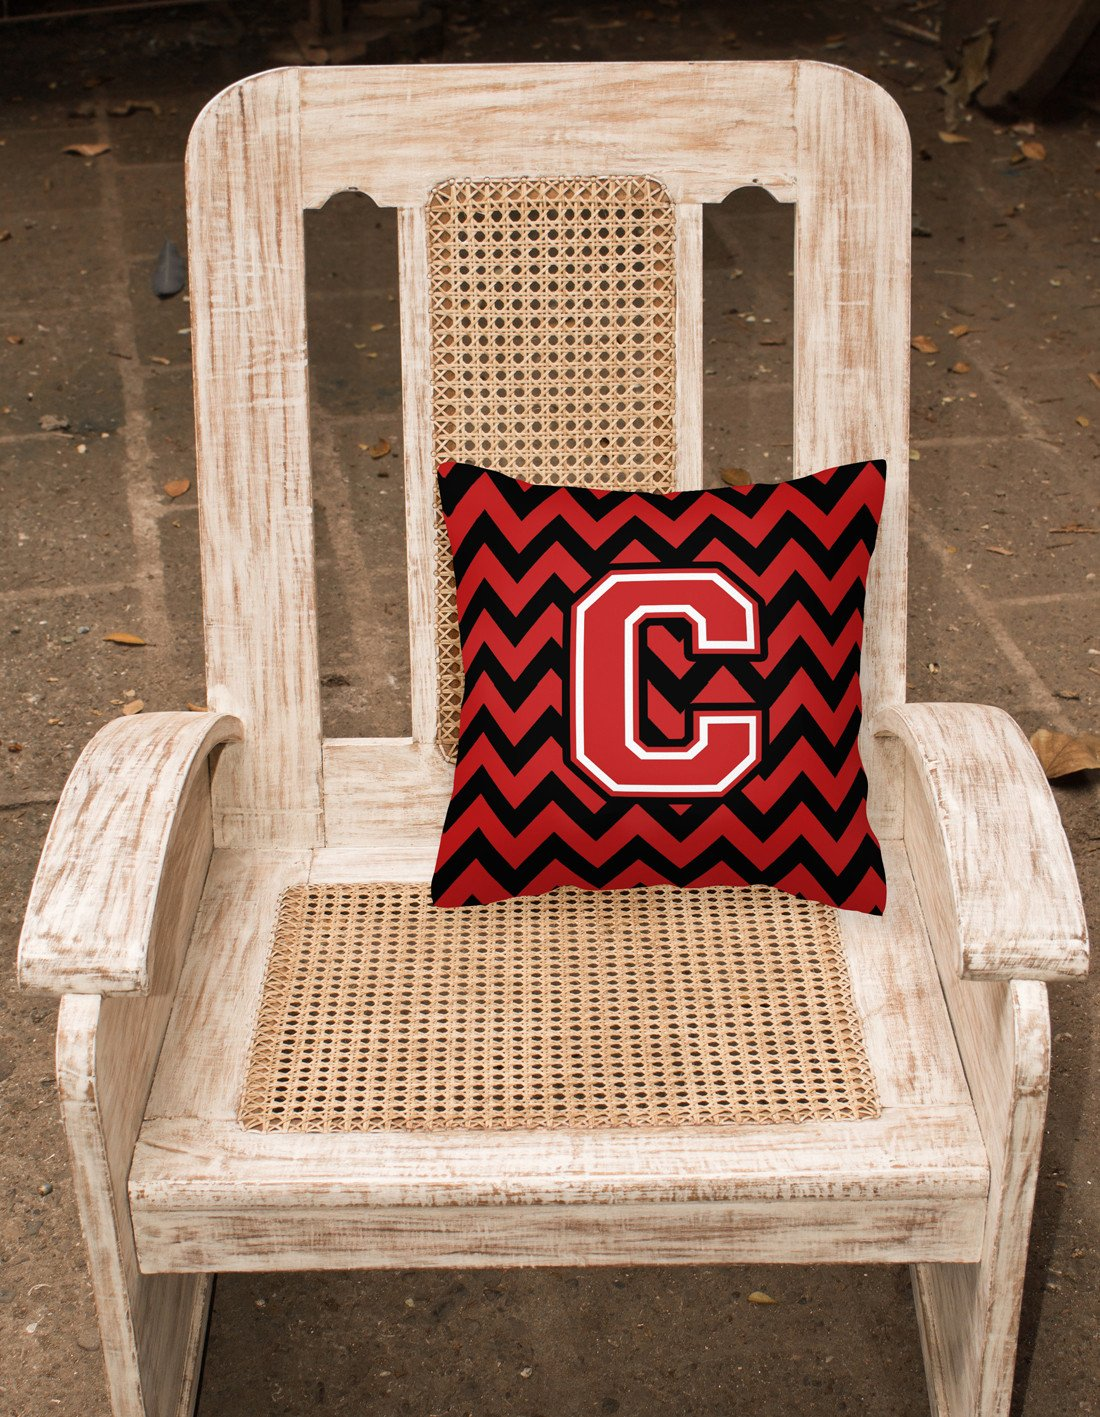 Letter C Chevron Black and Red   Fabric Decorative Pillow CJ1047-CPW1414 by Caroline's Treasures